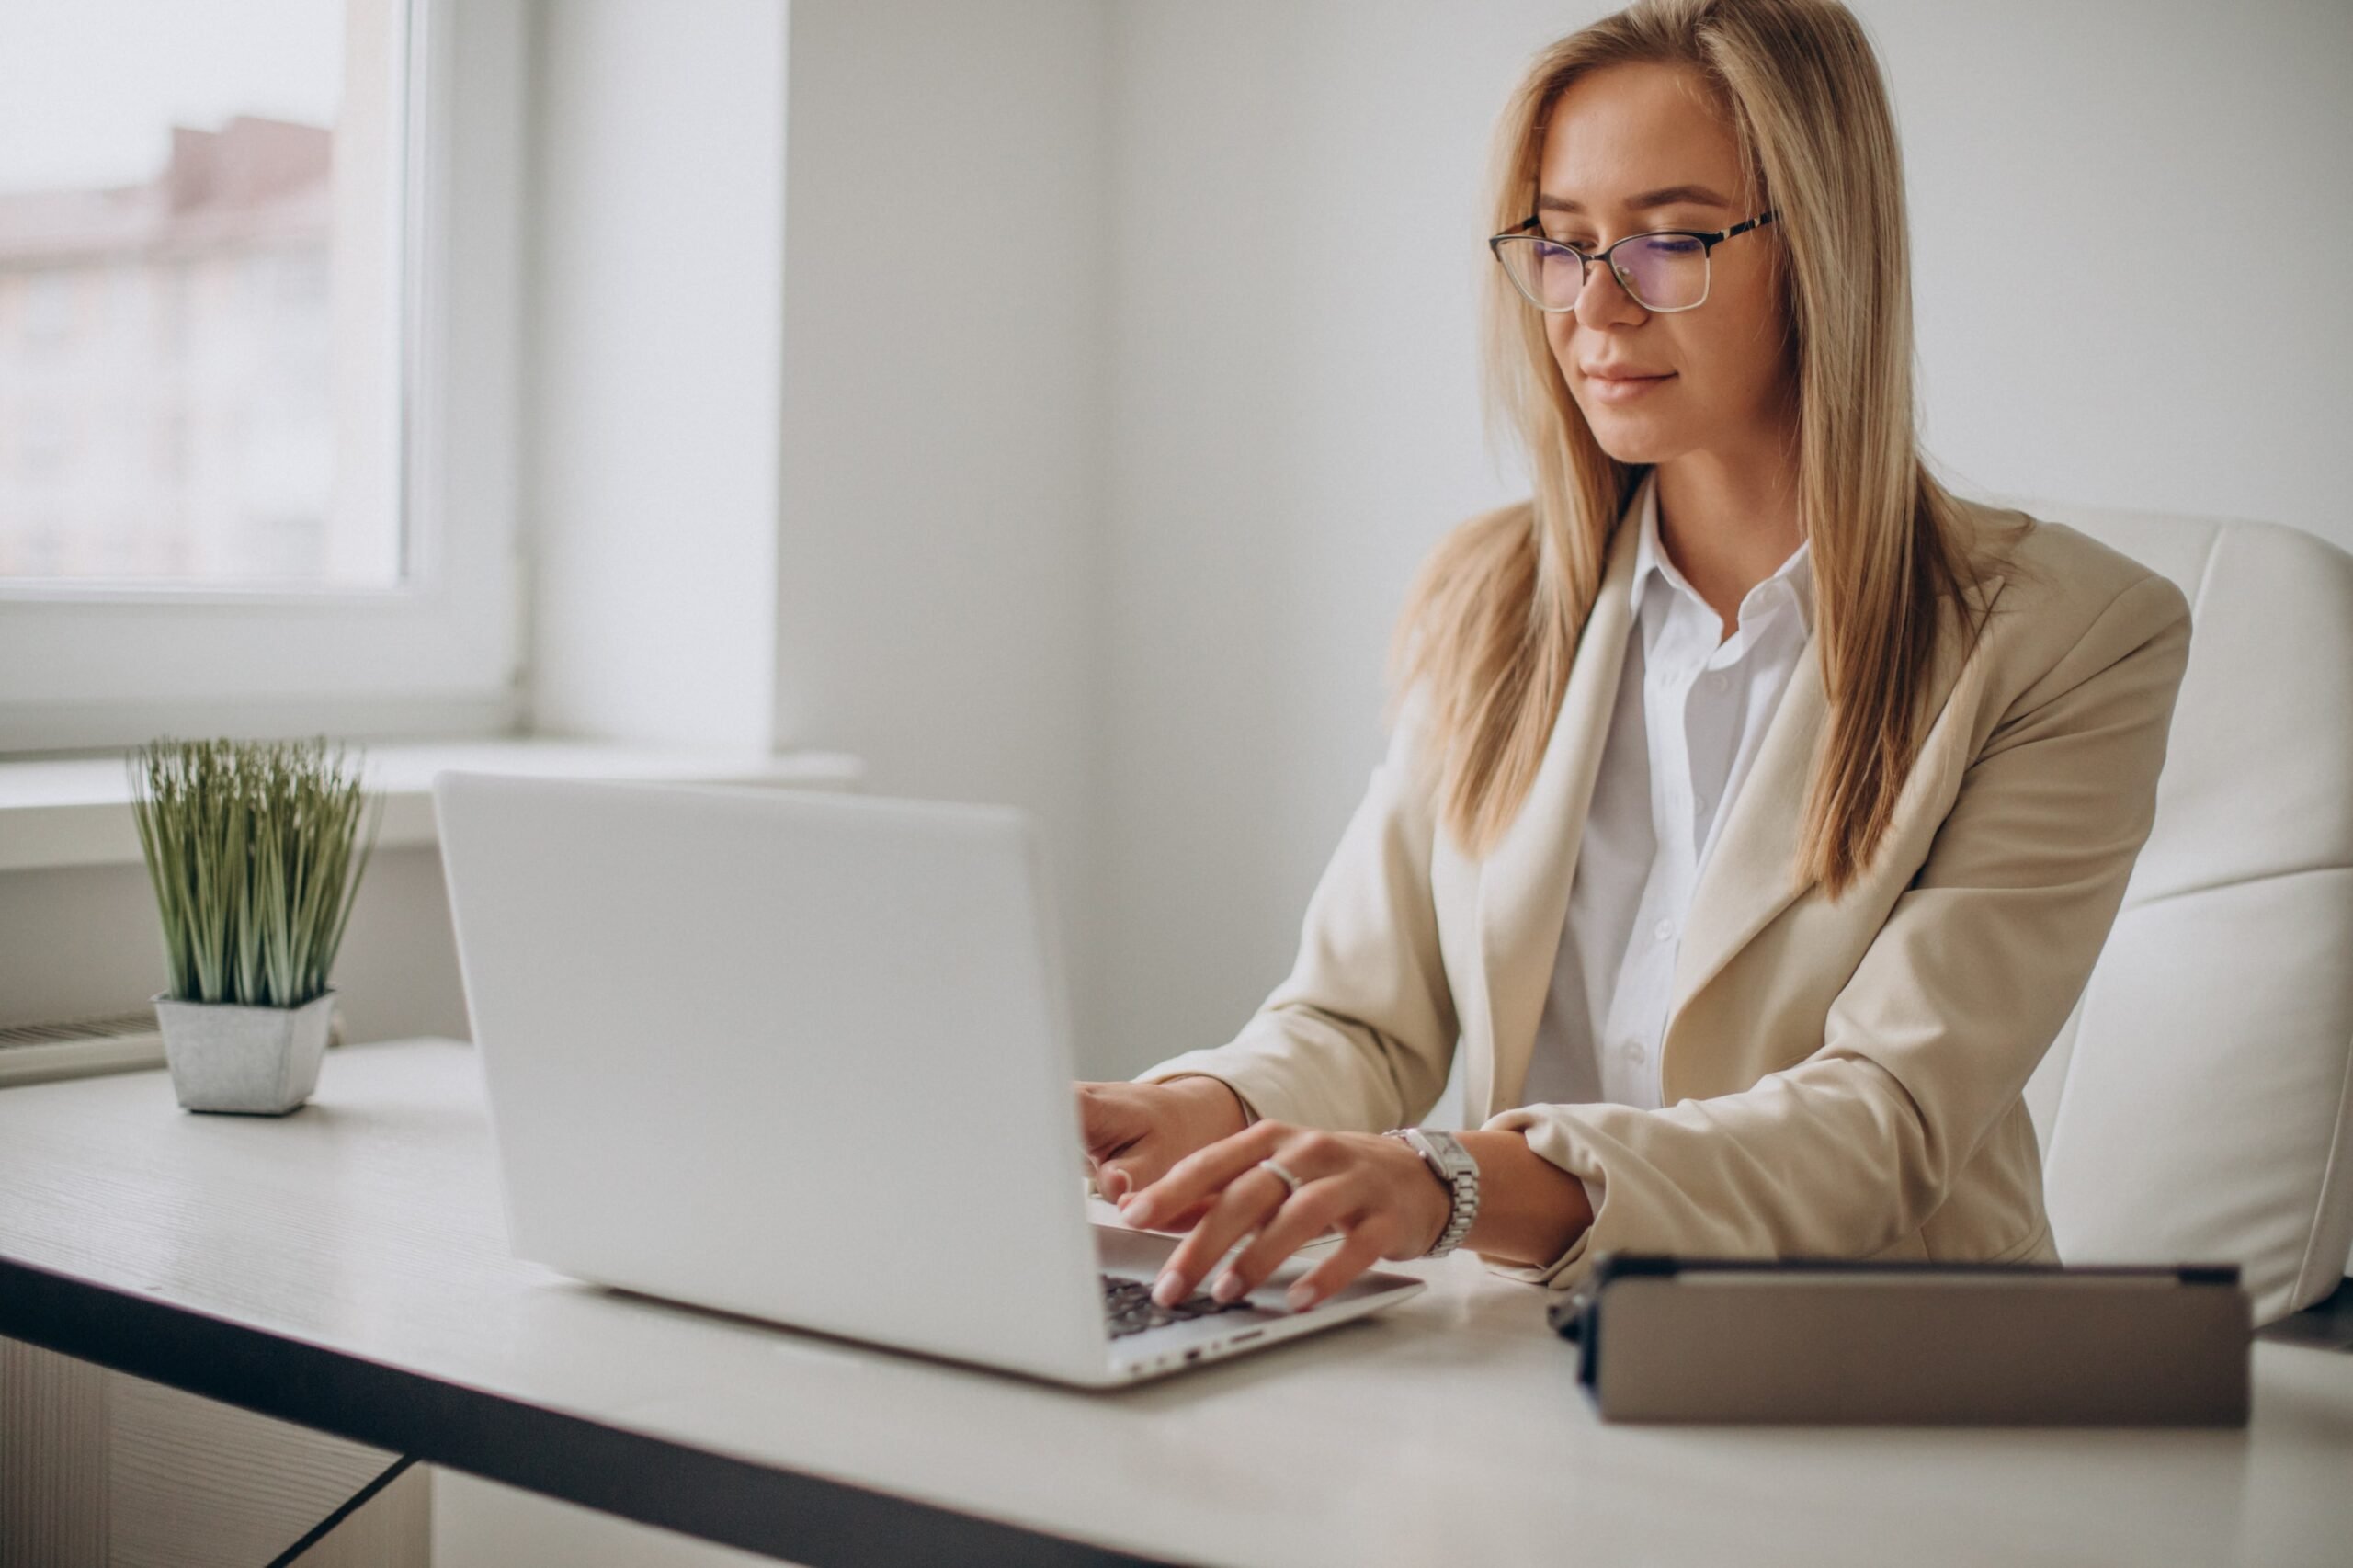 https://doradcy365.pl/wp-content/uploads/2021/03/young-business-woman-working-on-computer-in-office-min-scaled.jpg